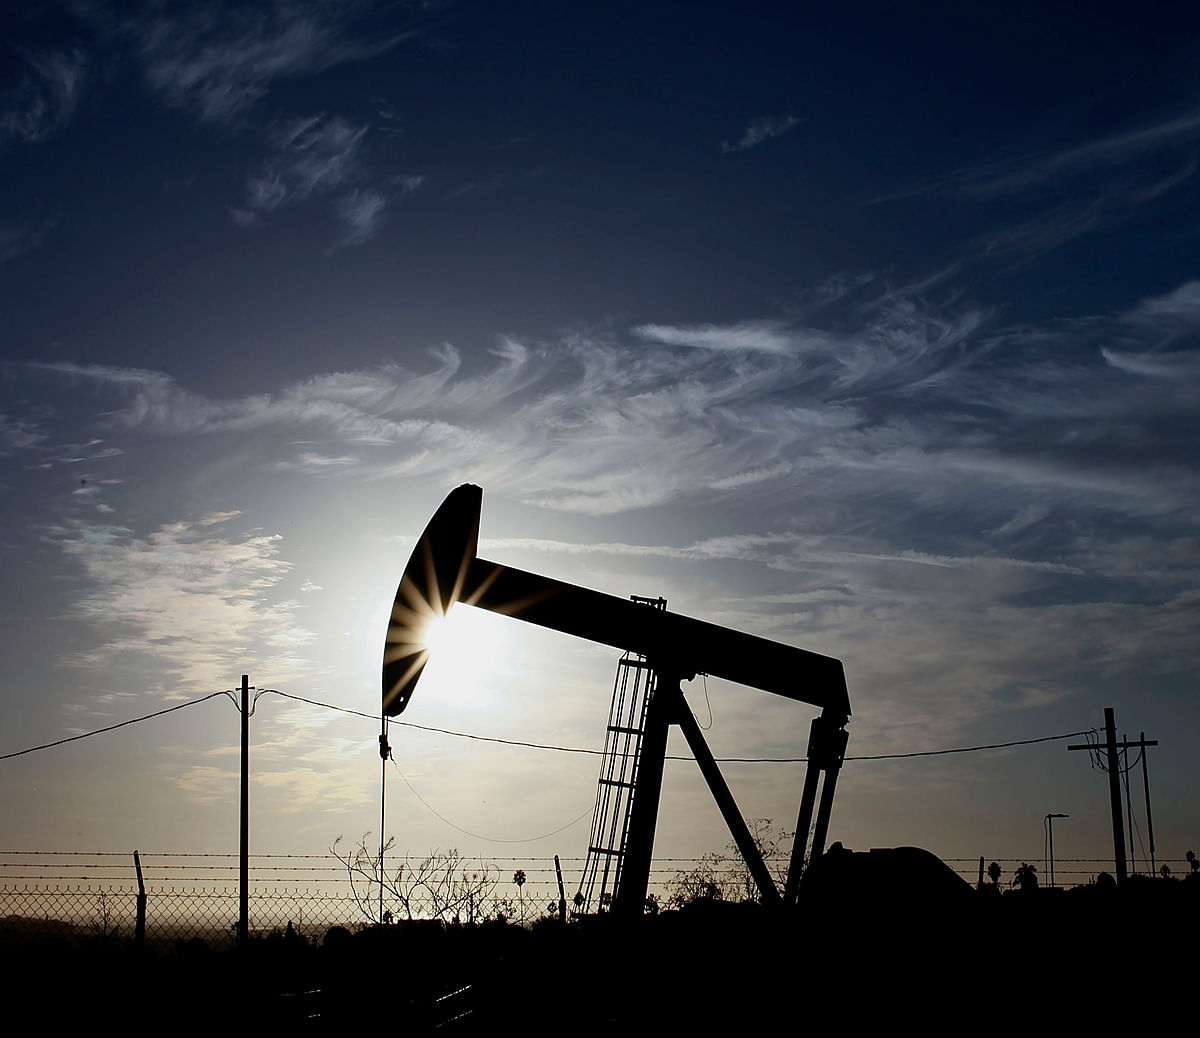 U.S. Shale Oil Will Keep Crude Prices In Check, Says IEA's Fatih Birol